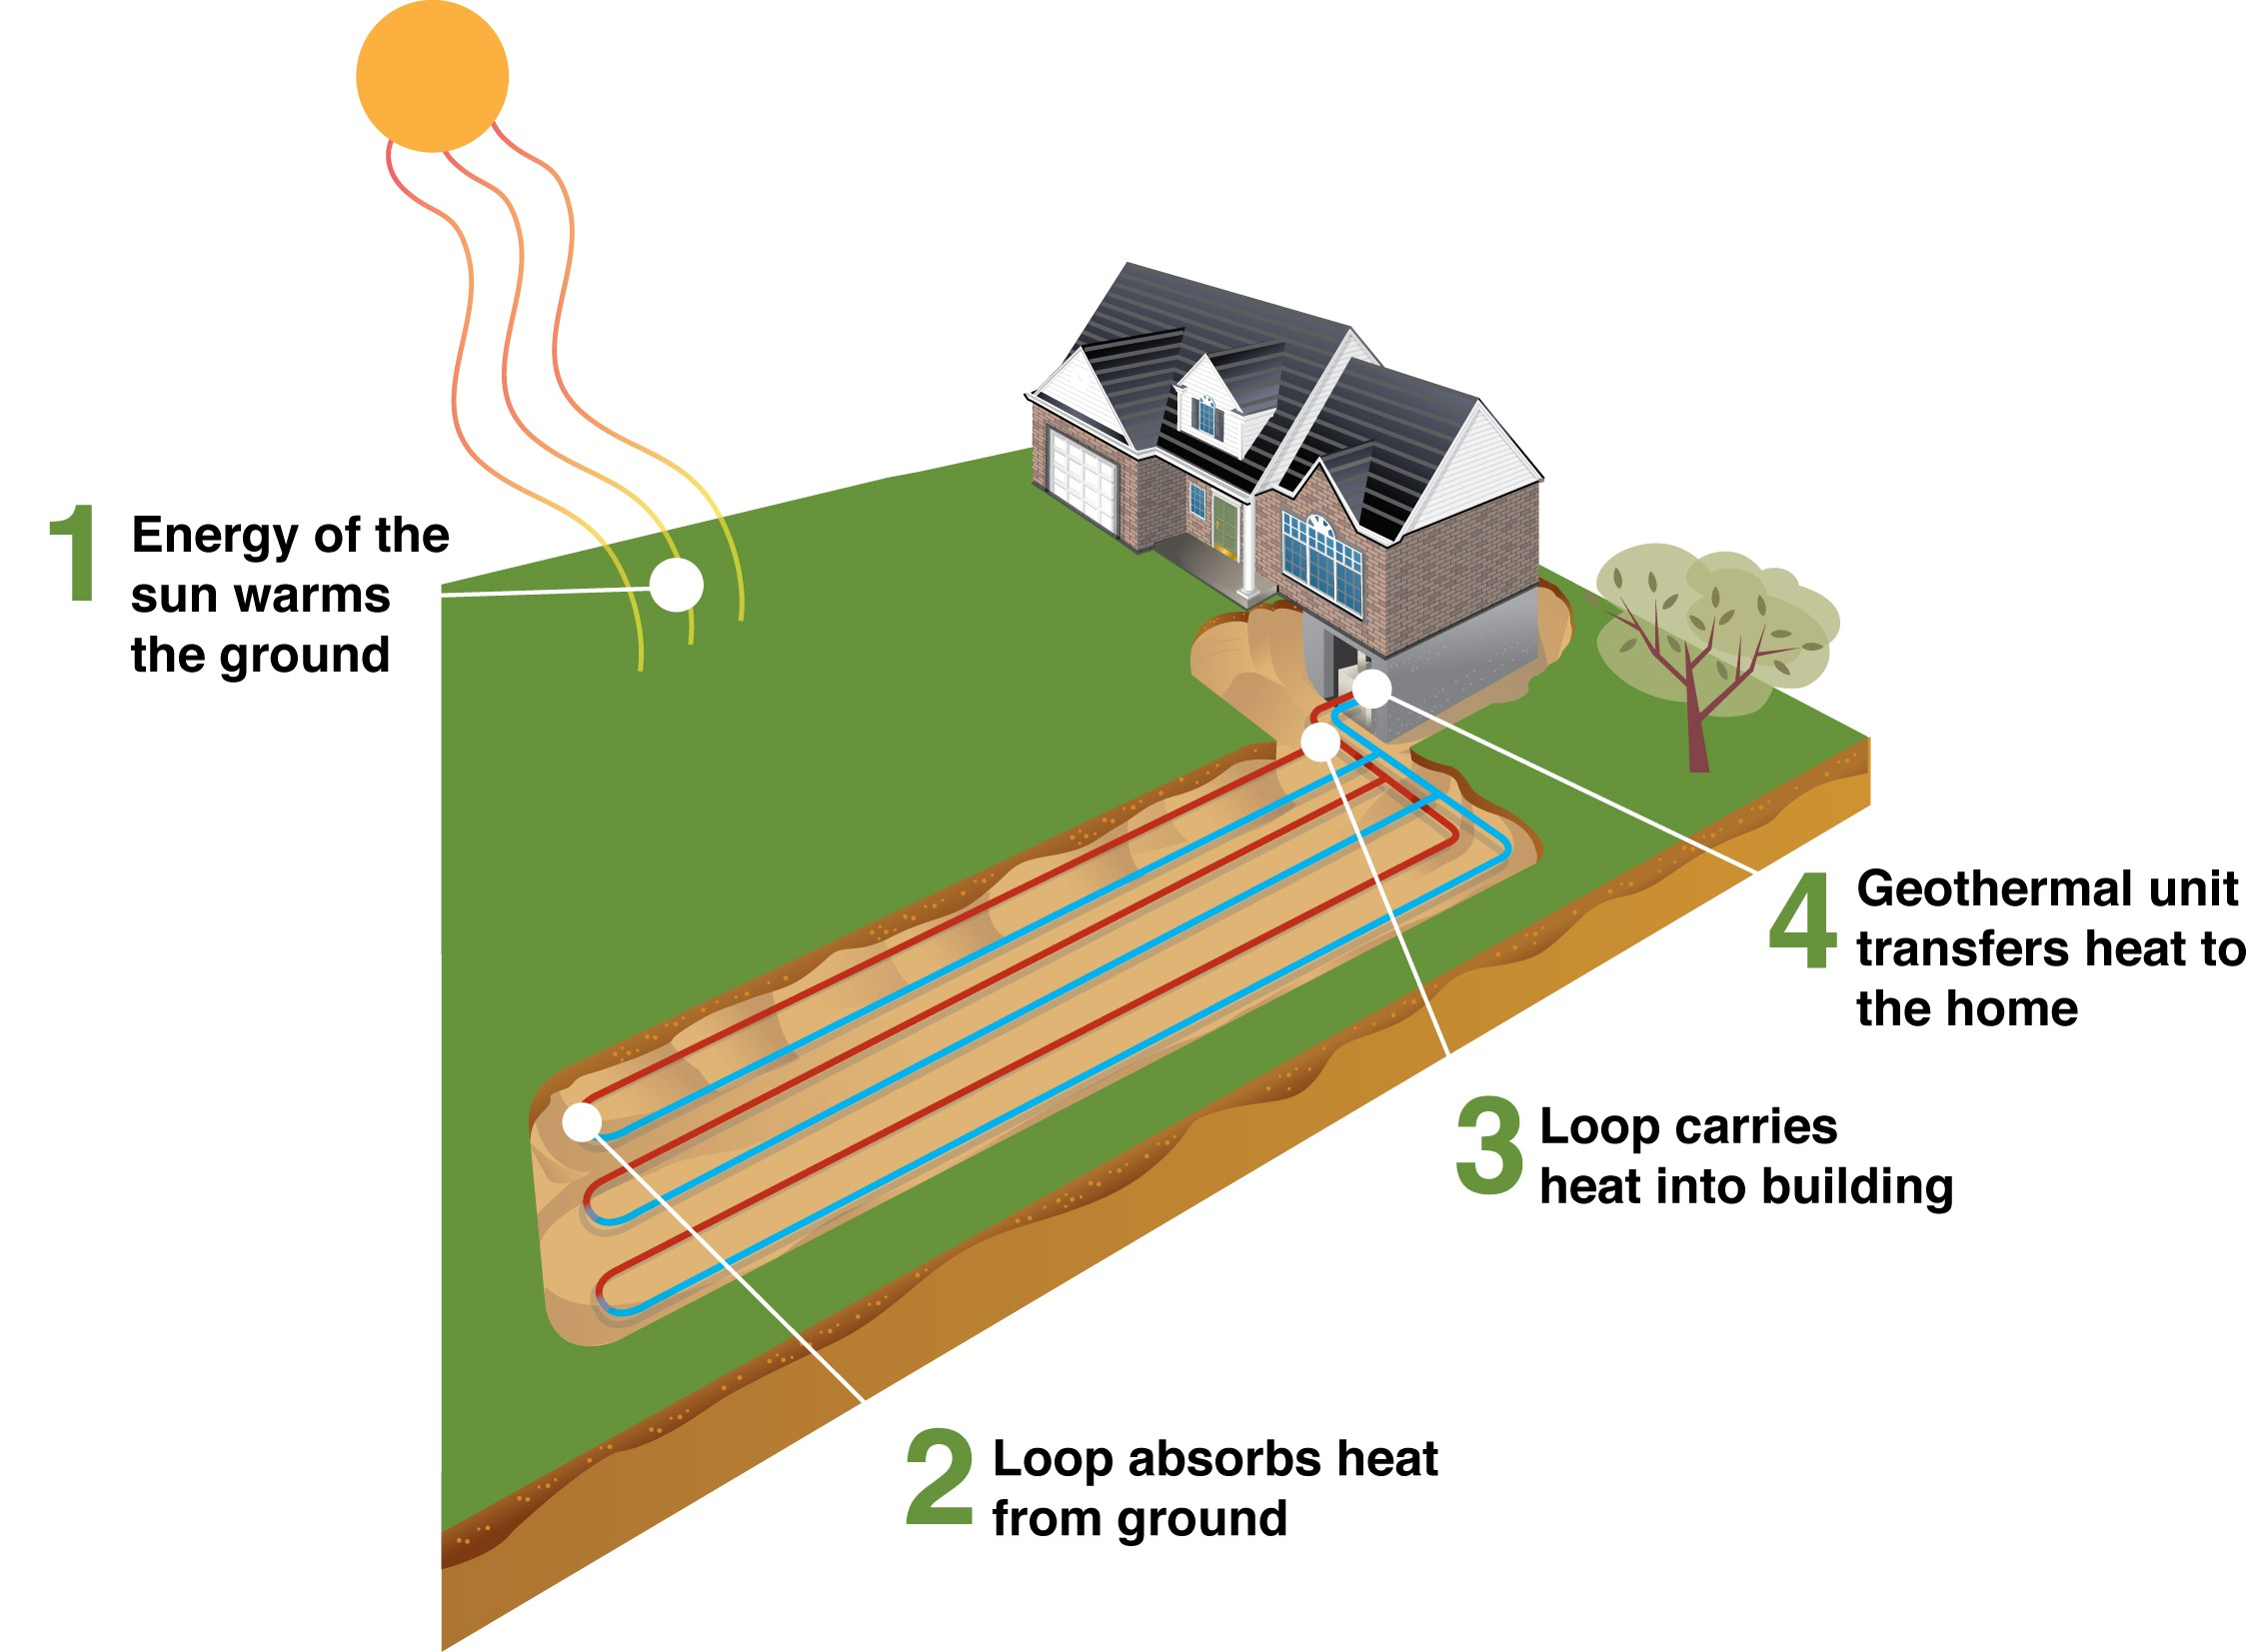 Hd Wallpapers Heat Diagram Geothermal Wiring Diagrams Get Free High Quality